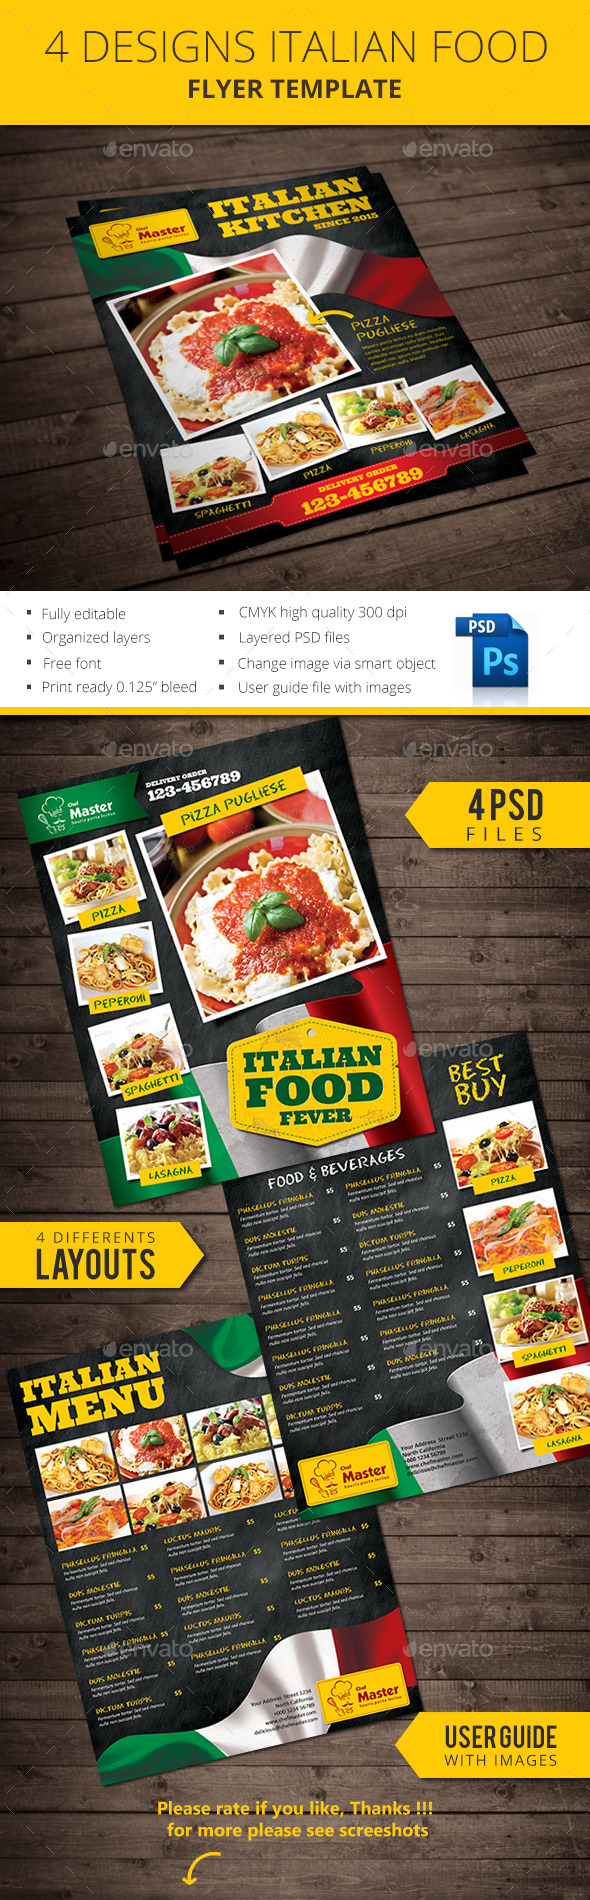 Italian Food Flyer - Restaurant Flyers